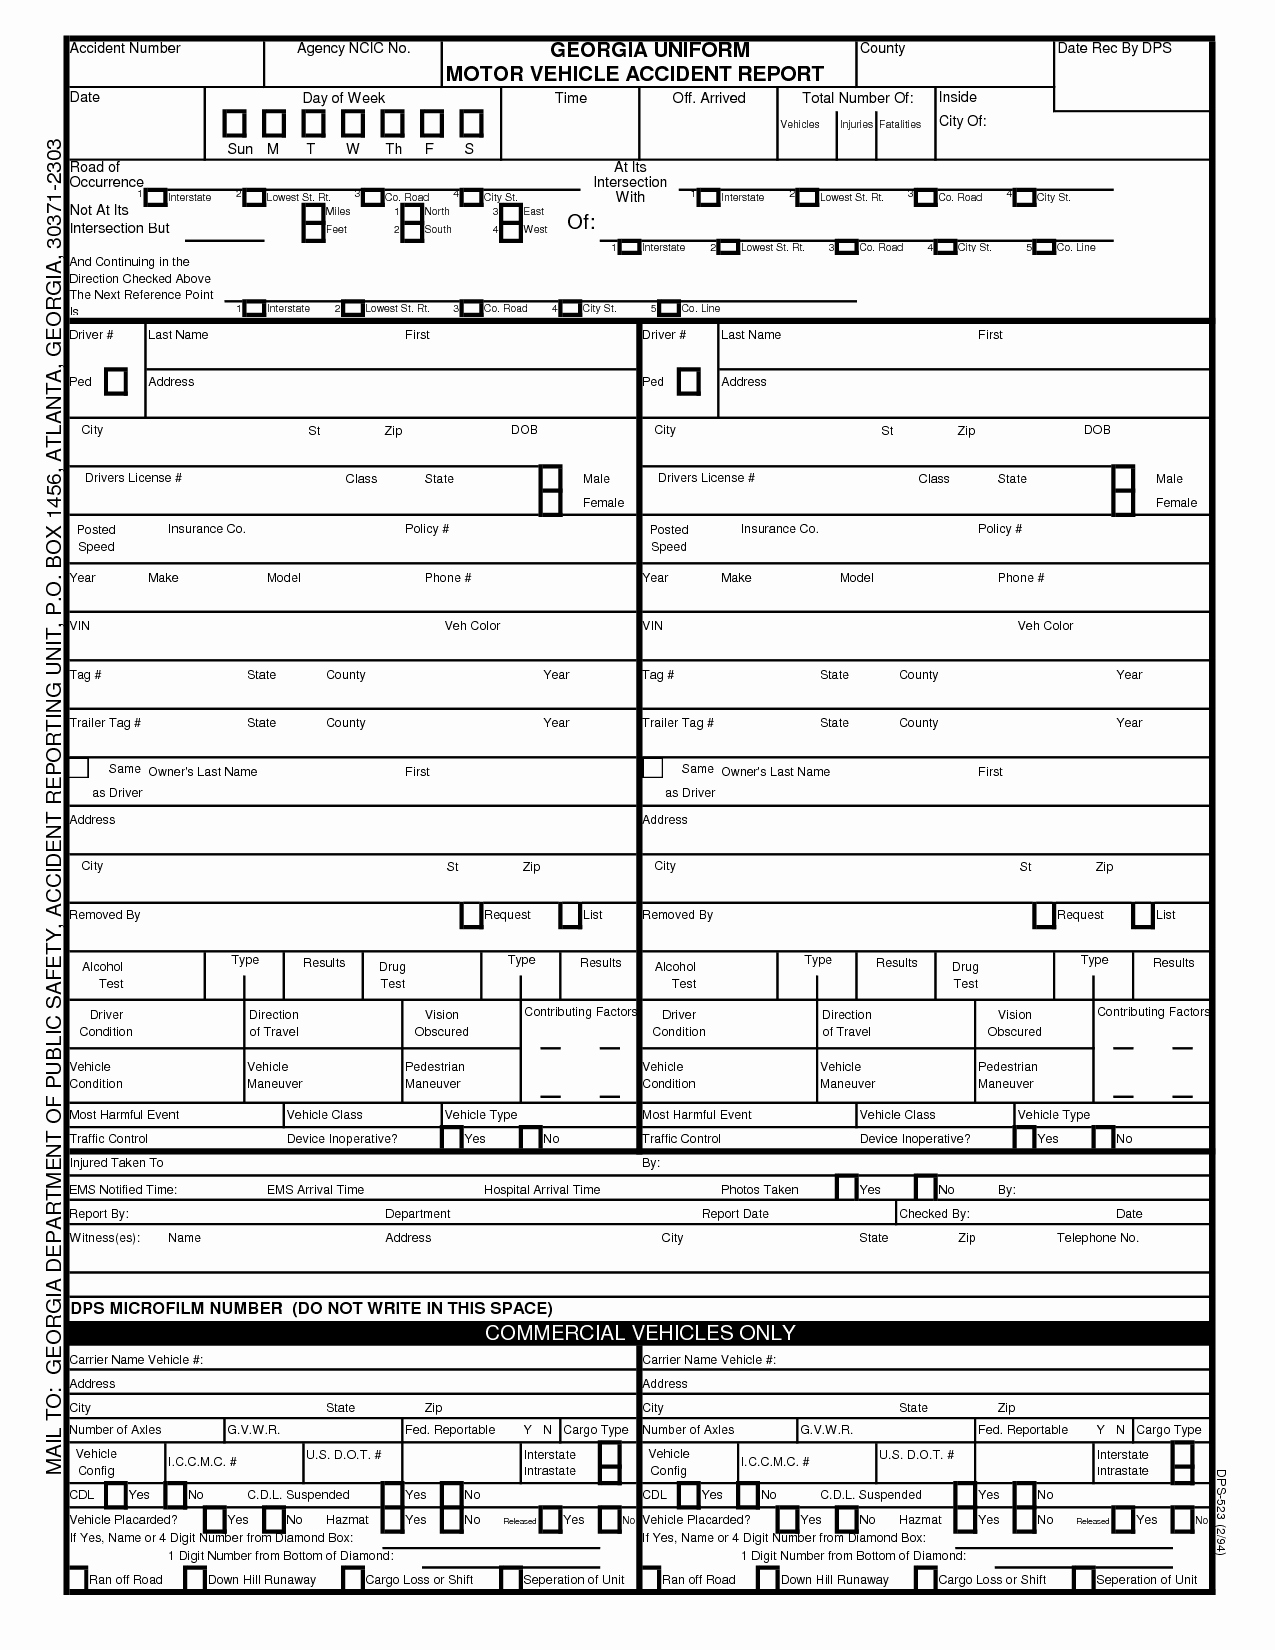 Vehicle Accident Report form Template Lovely Tario Motor Vehicle Accident Report Impremedia